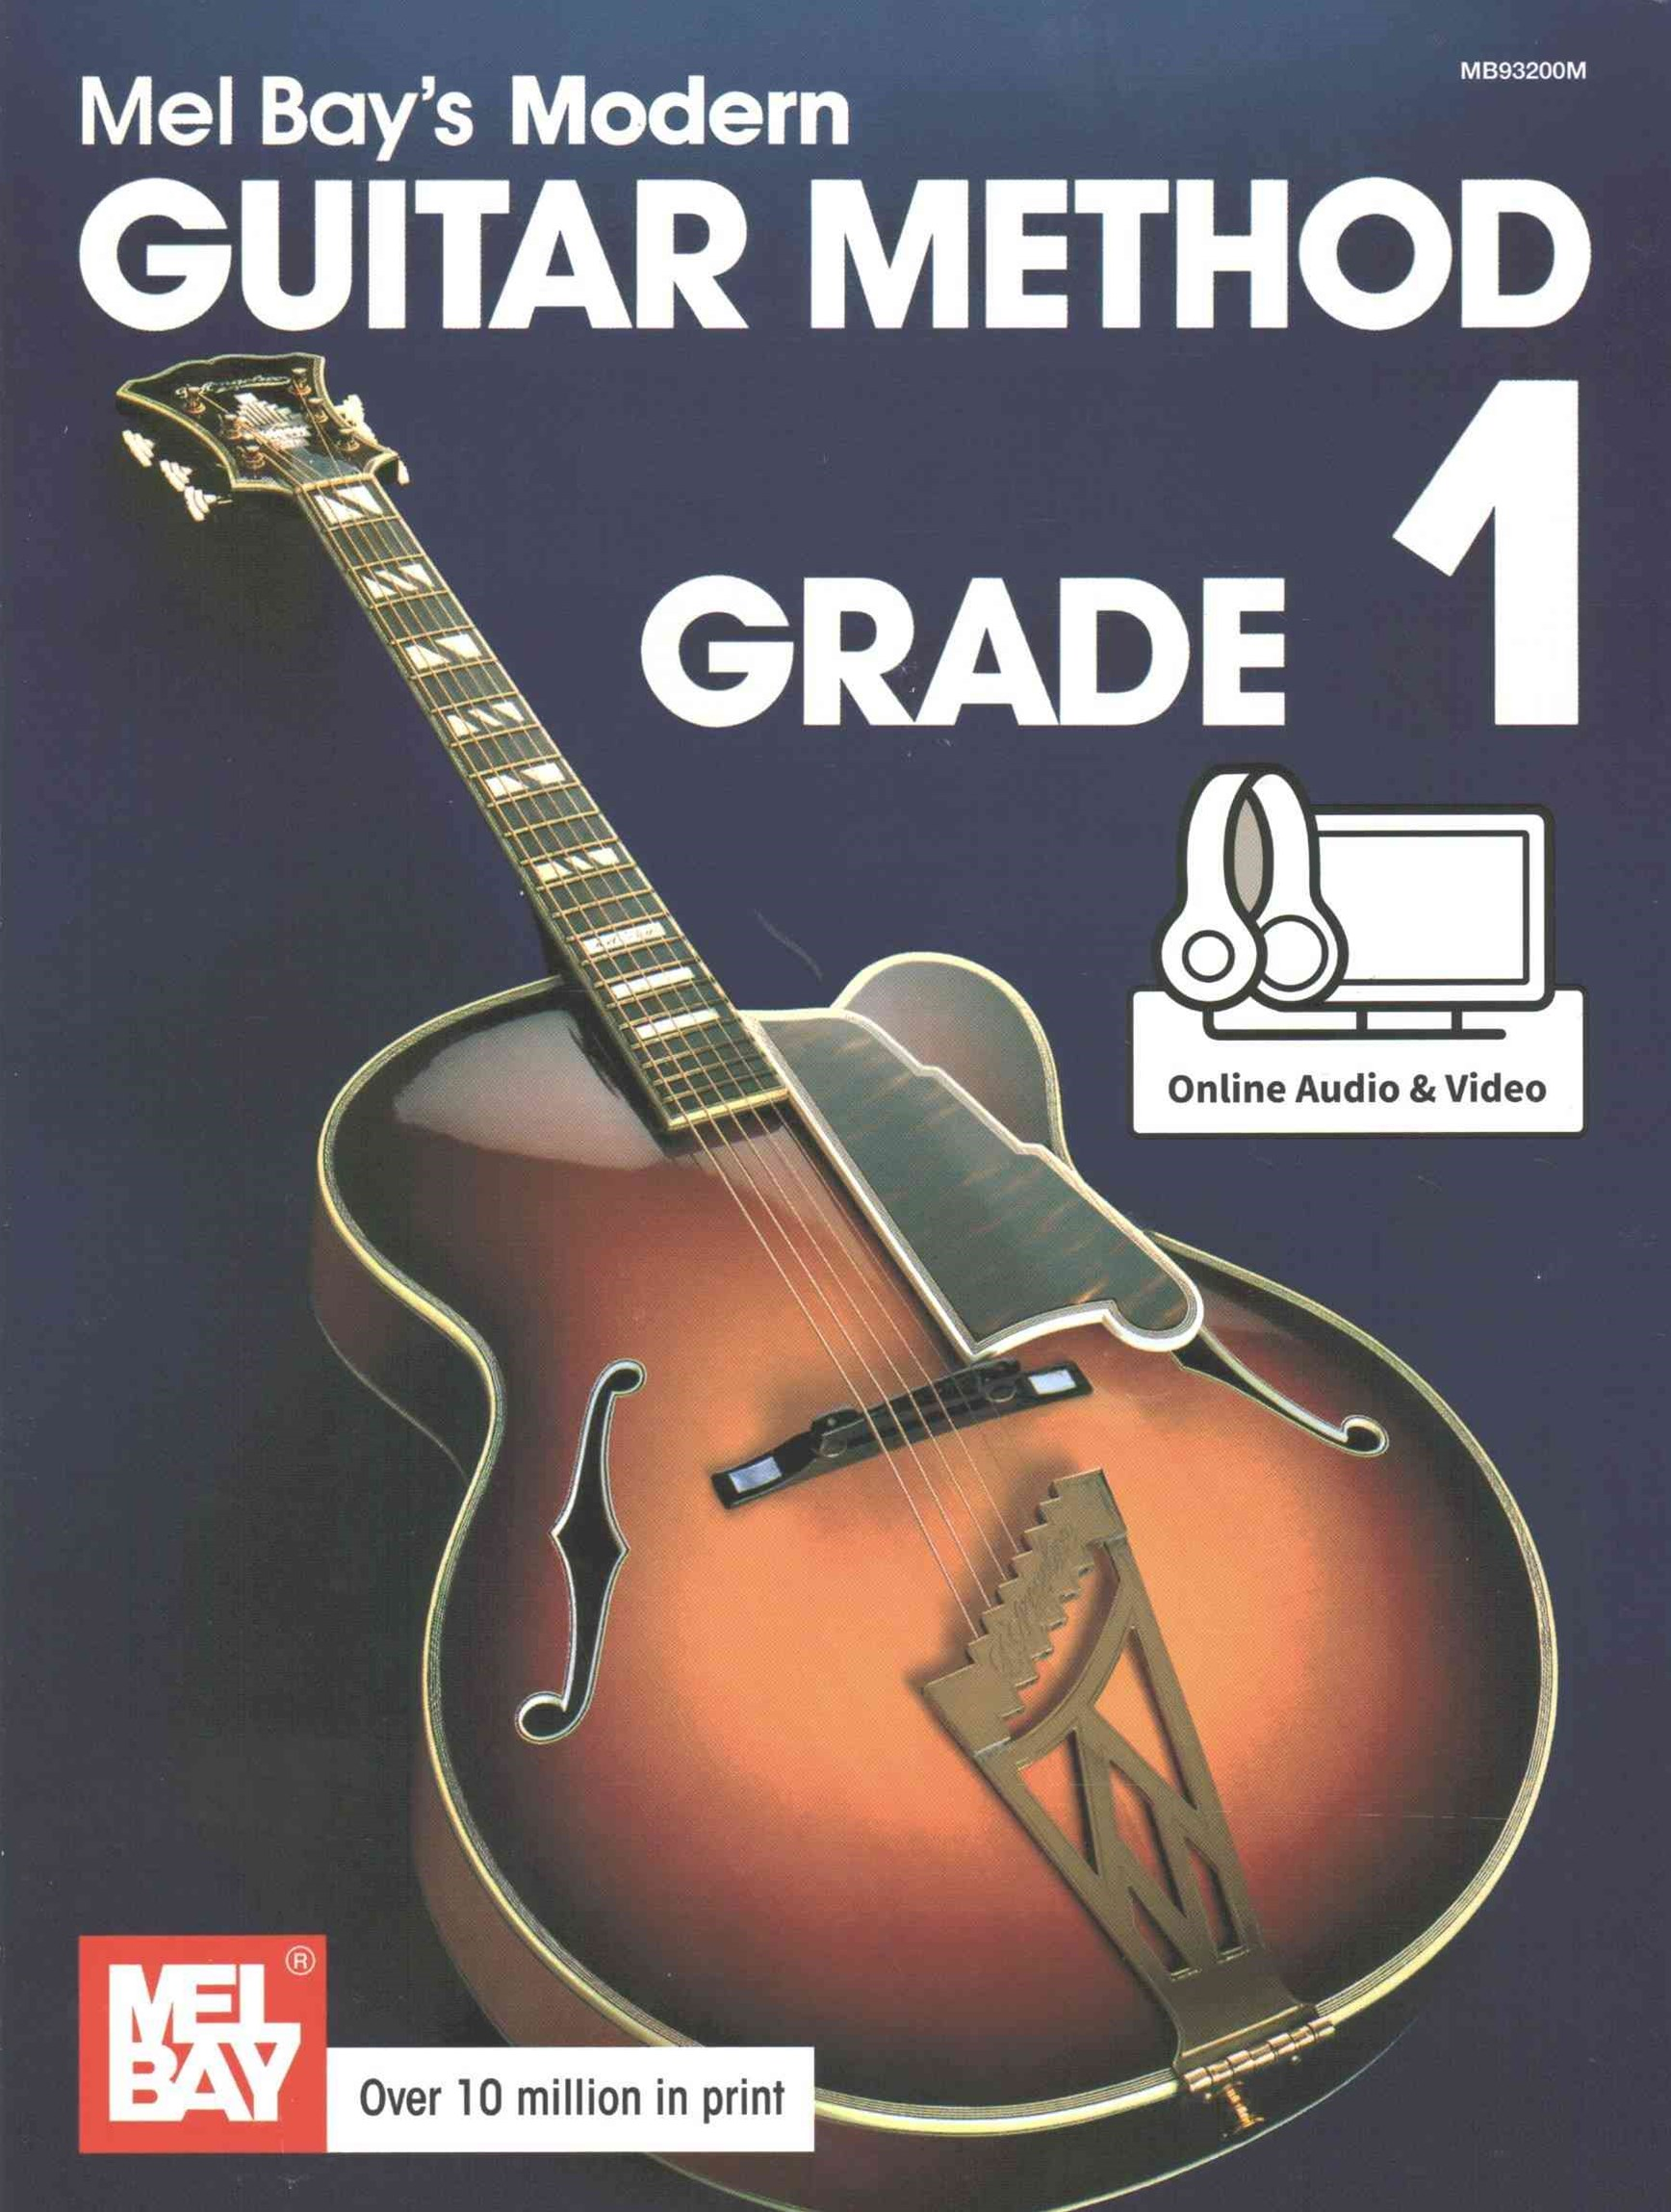 MEL BAYS MODERN GUITAR METHOD GRADE 1